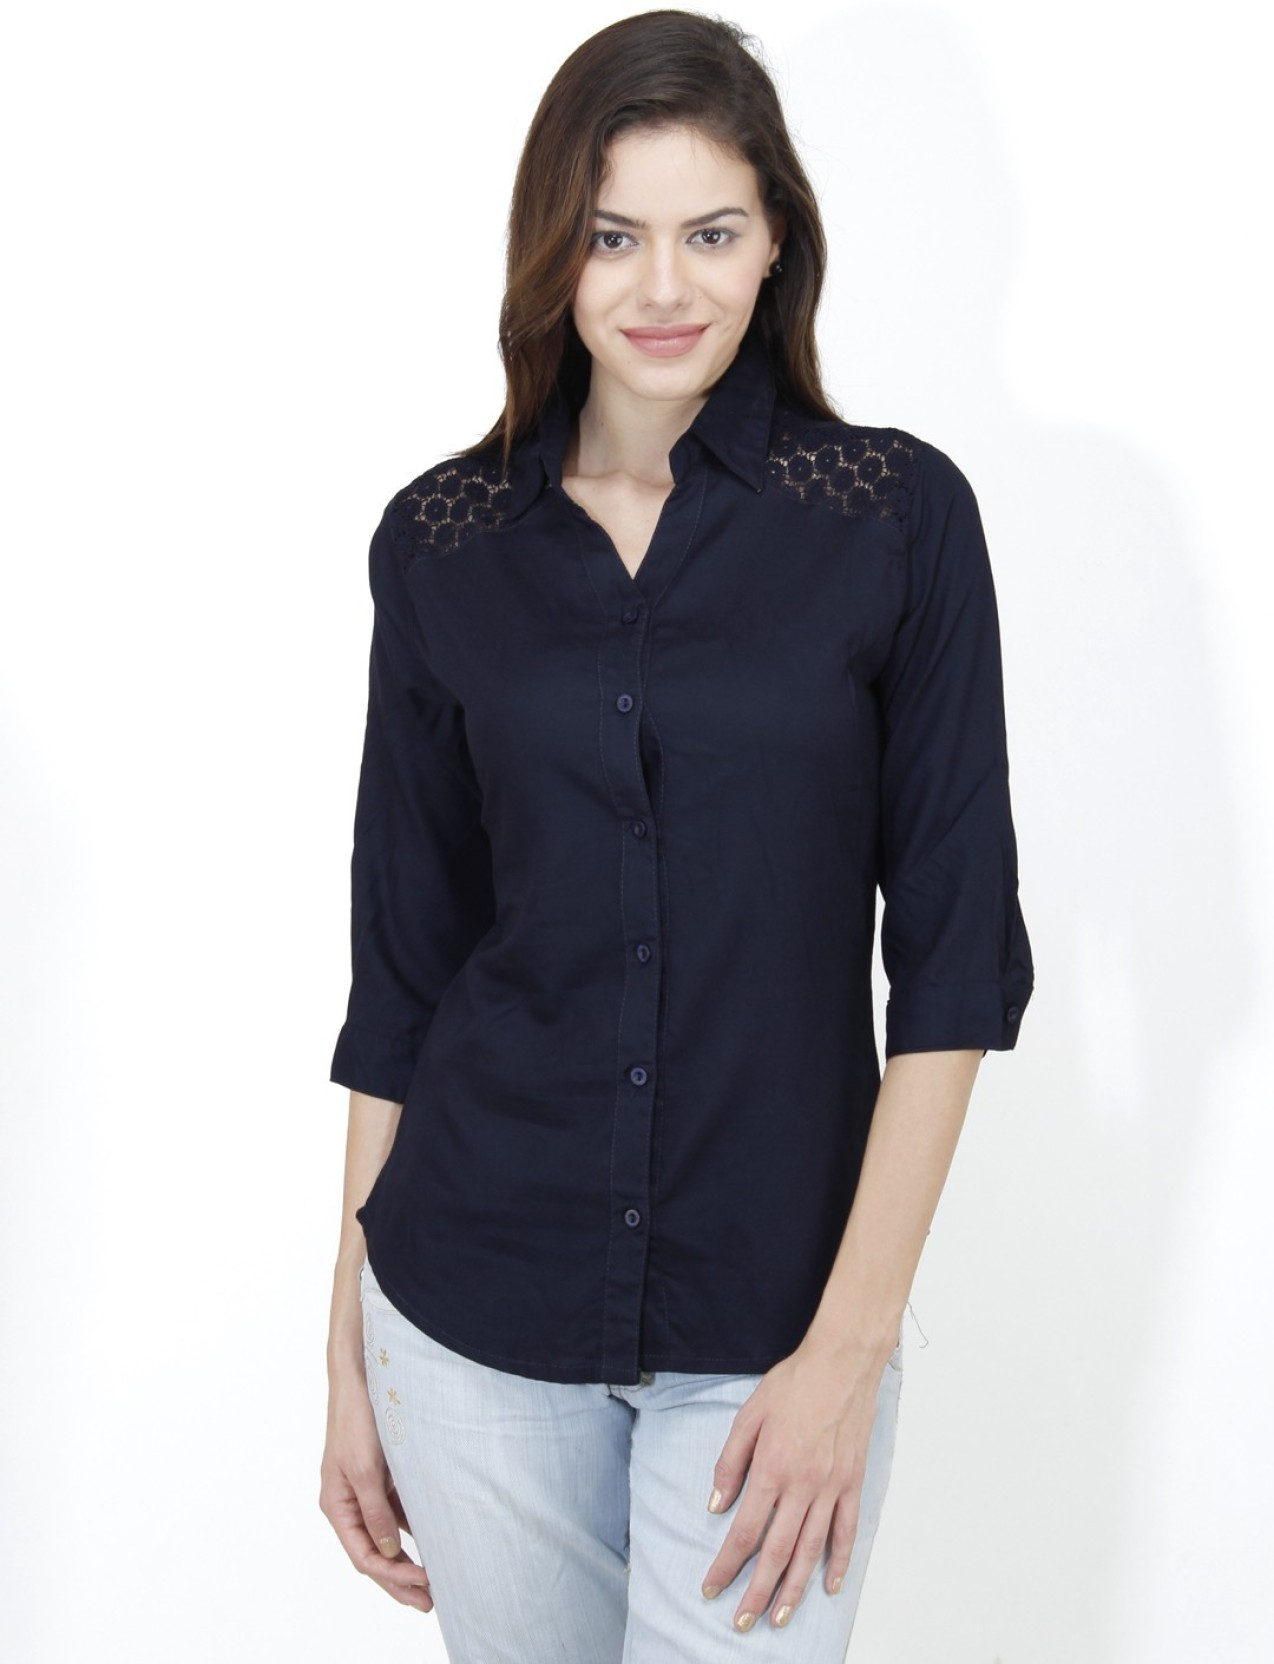 Free shipping BOTH ways on dark blue denim shirt for women, from our vast selection of styles. Fast delivery, and 24/7/ real-person service with a smile. Click or call